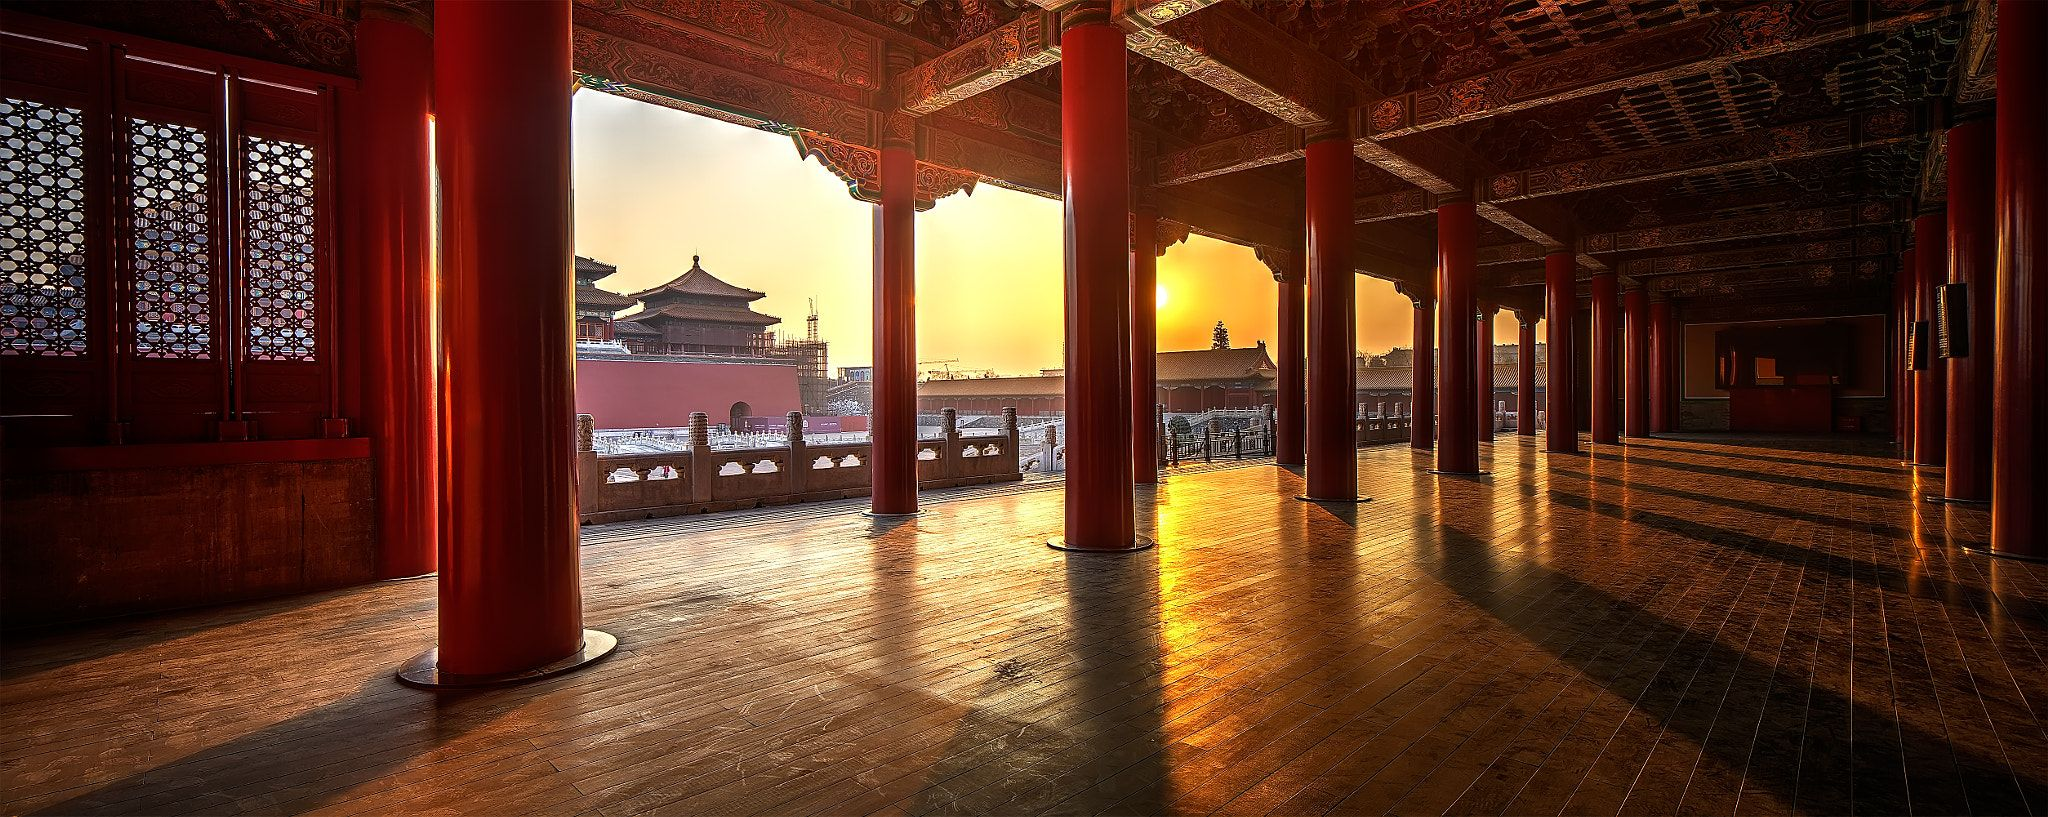 Forbidden City 2 Sunset Time Inside The Forbidden City In Beijing China With Images Forbidden City City Summer Palace